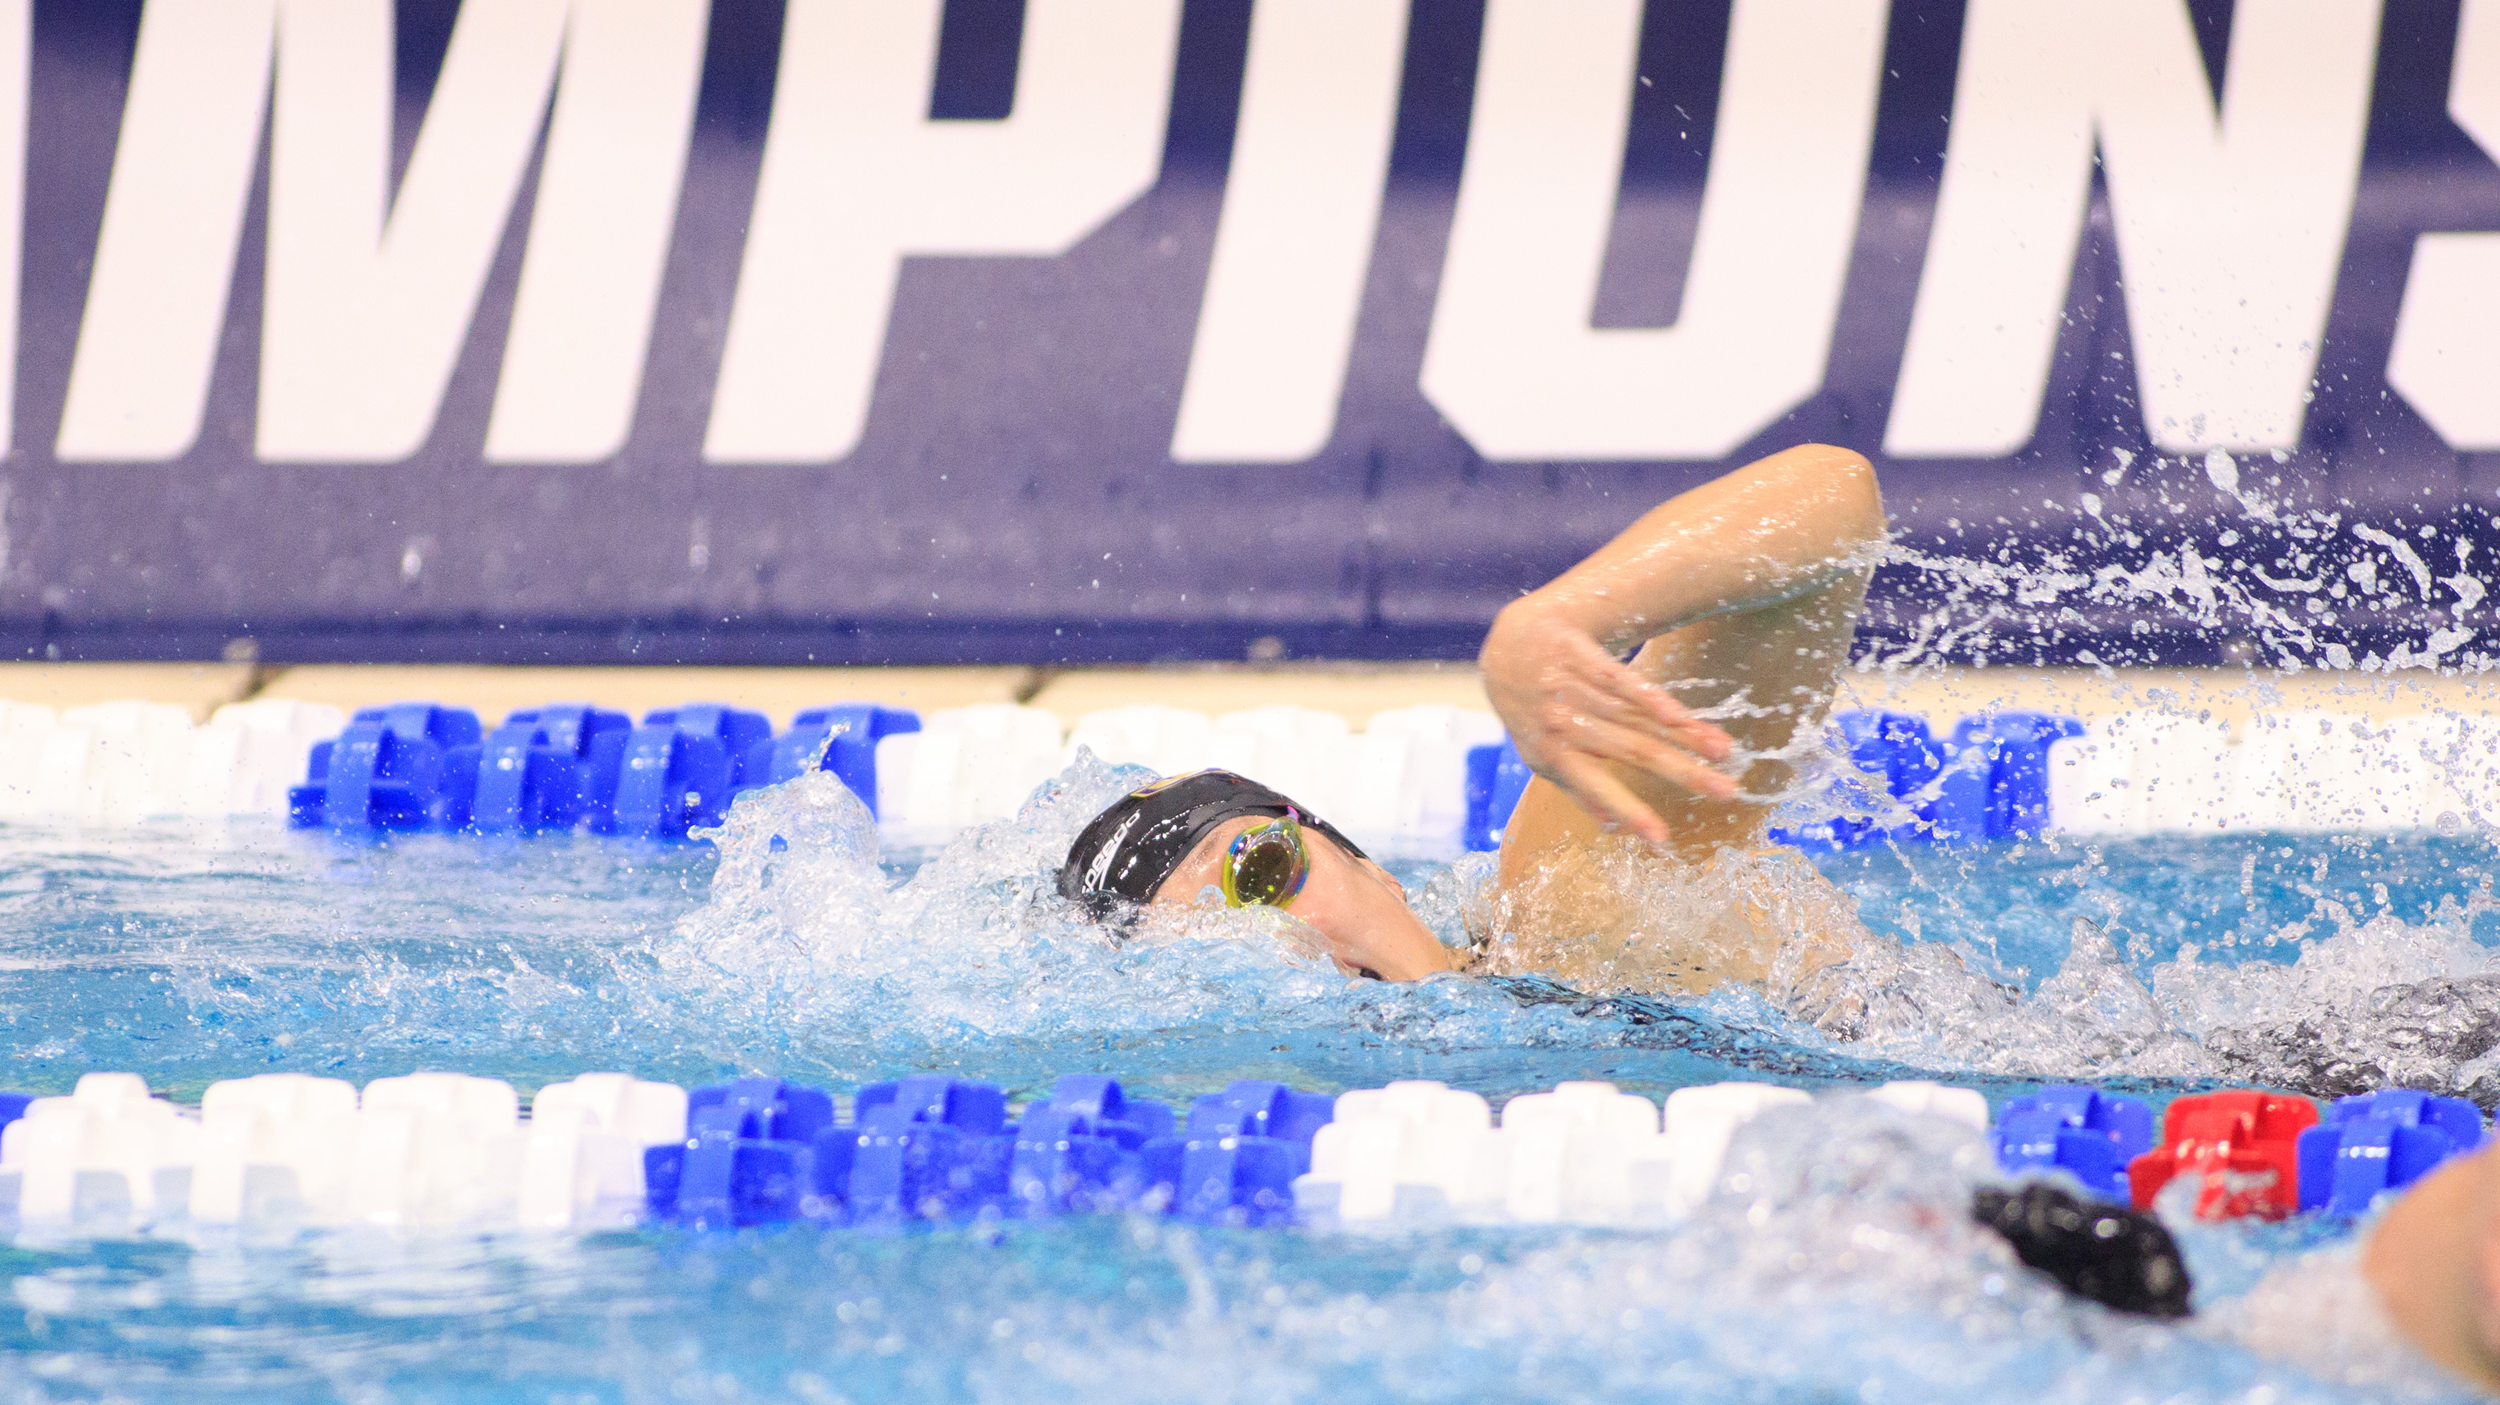 Swimming & Diving: Zhang Finishes 29th in 200 Freestyle at NCAA's